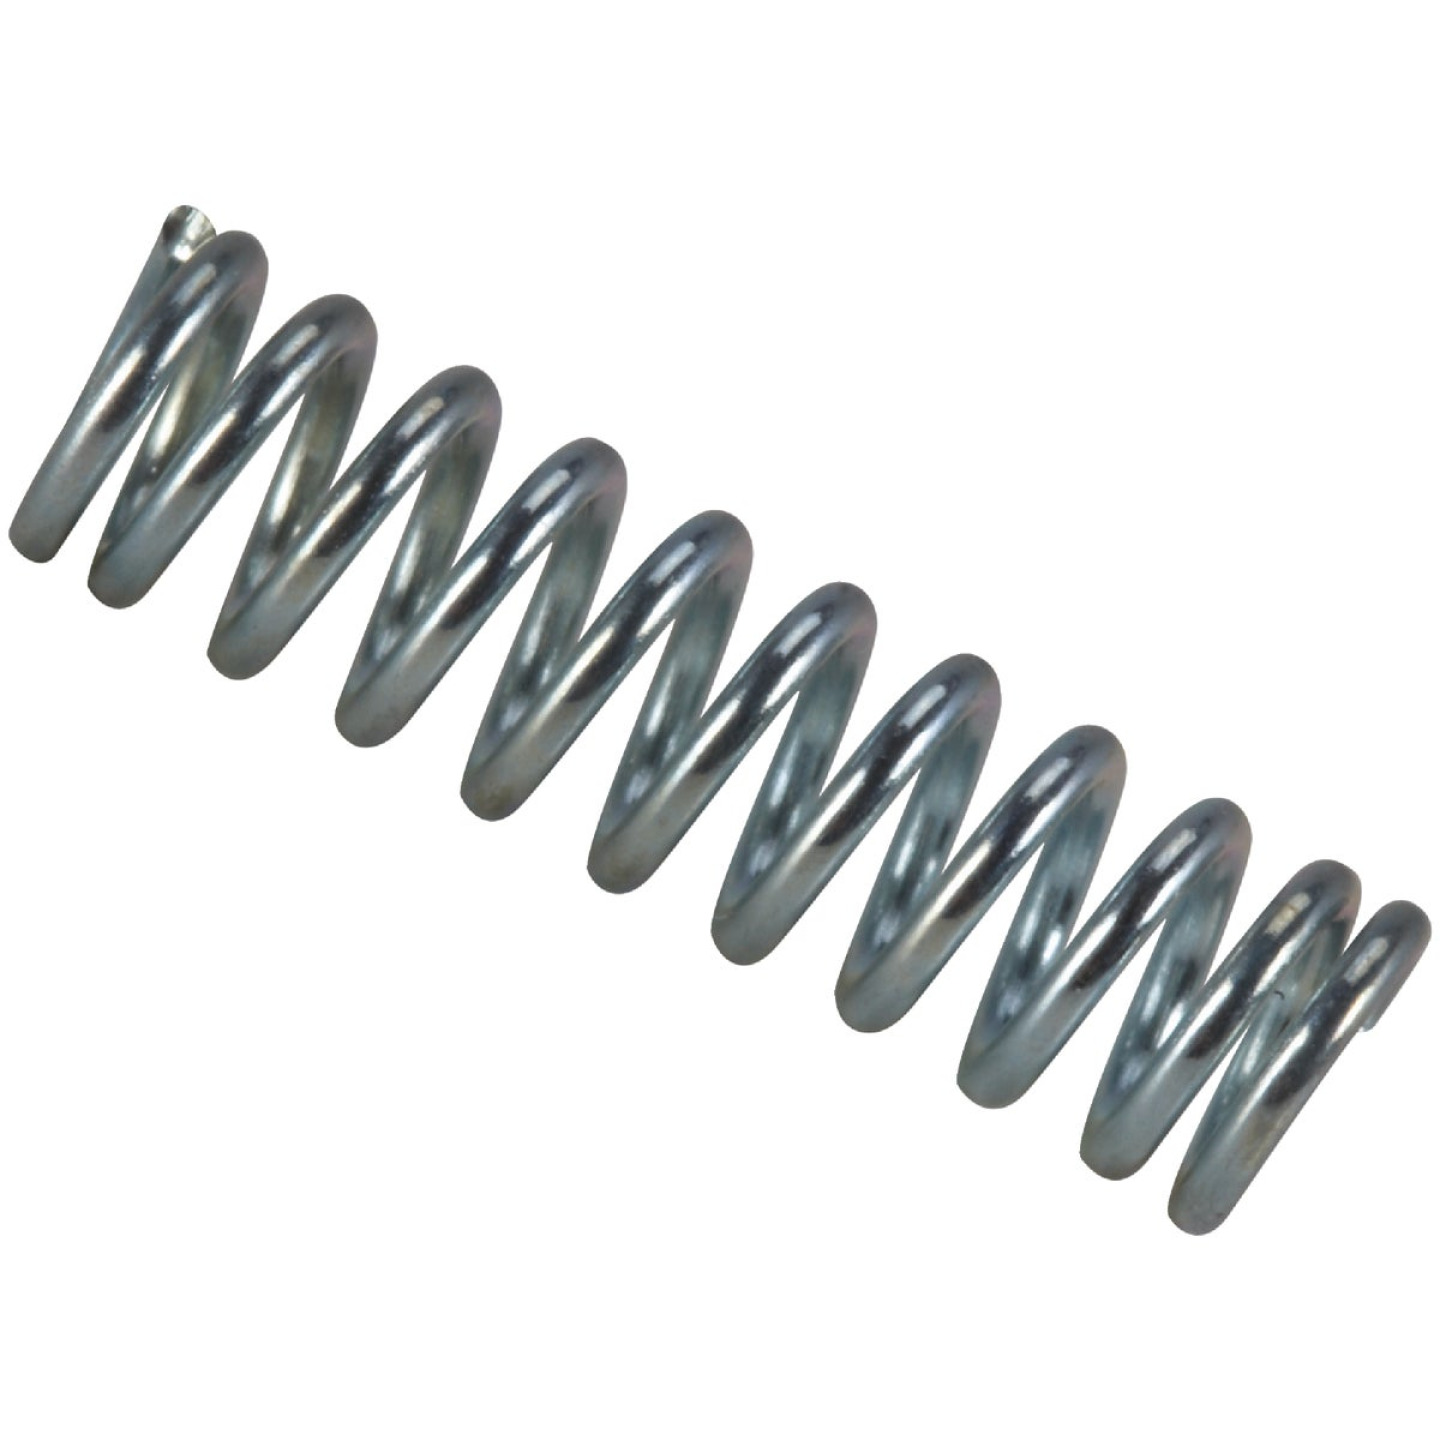 Century Spring 9 In. x 5/8 In. Compression Spring (1 Count) Image 1